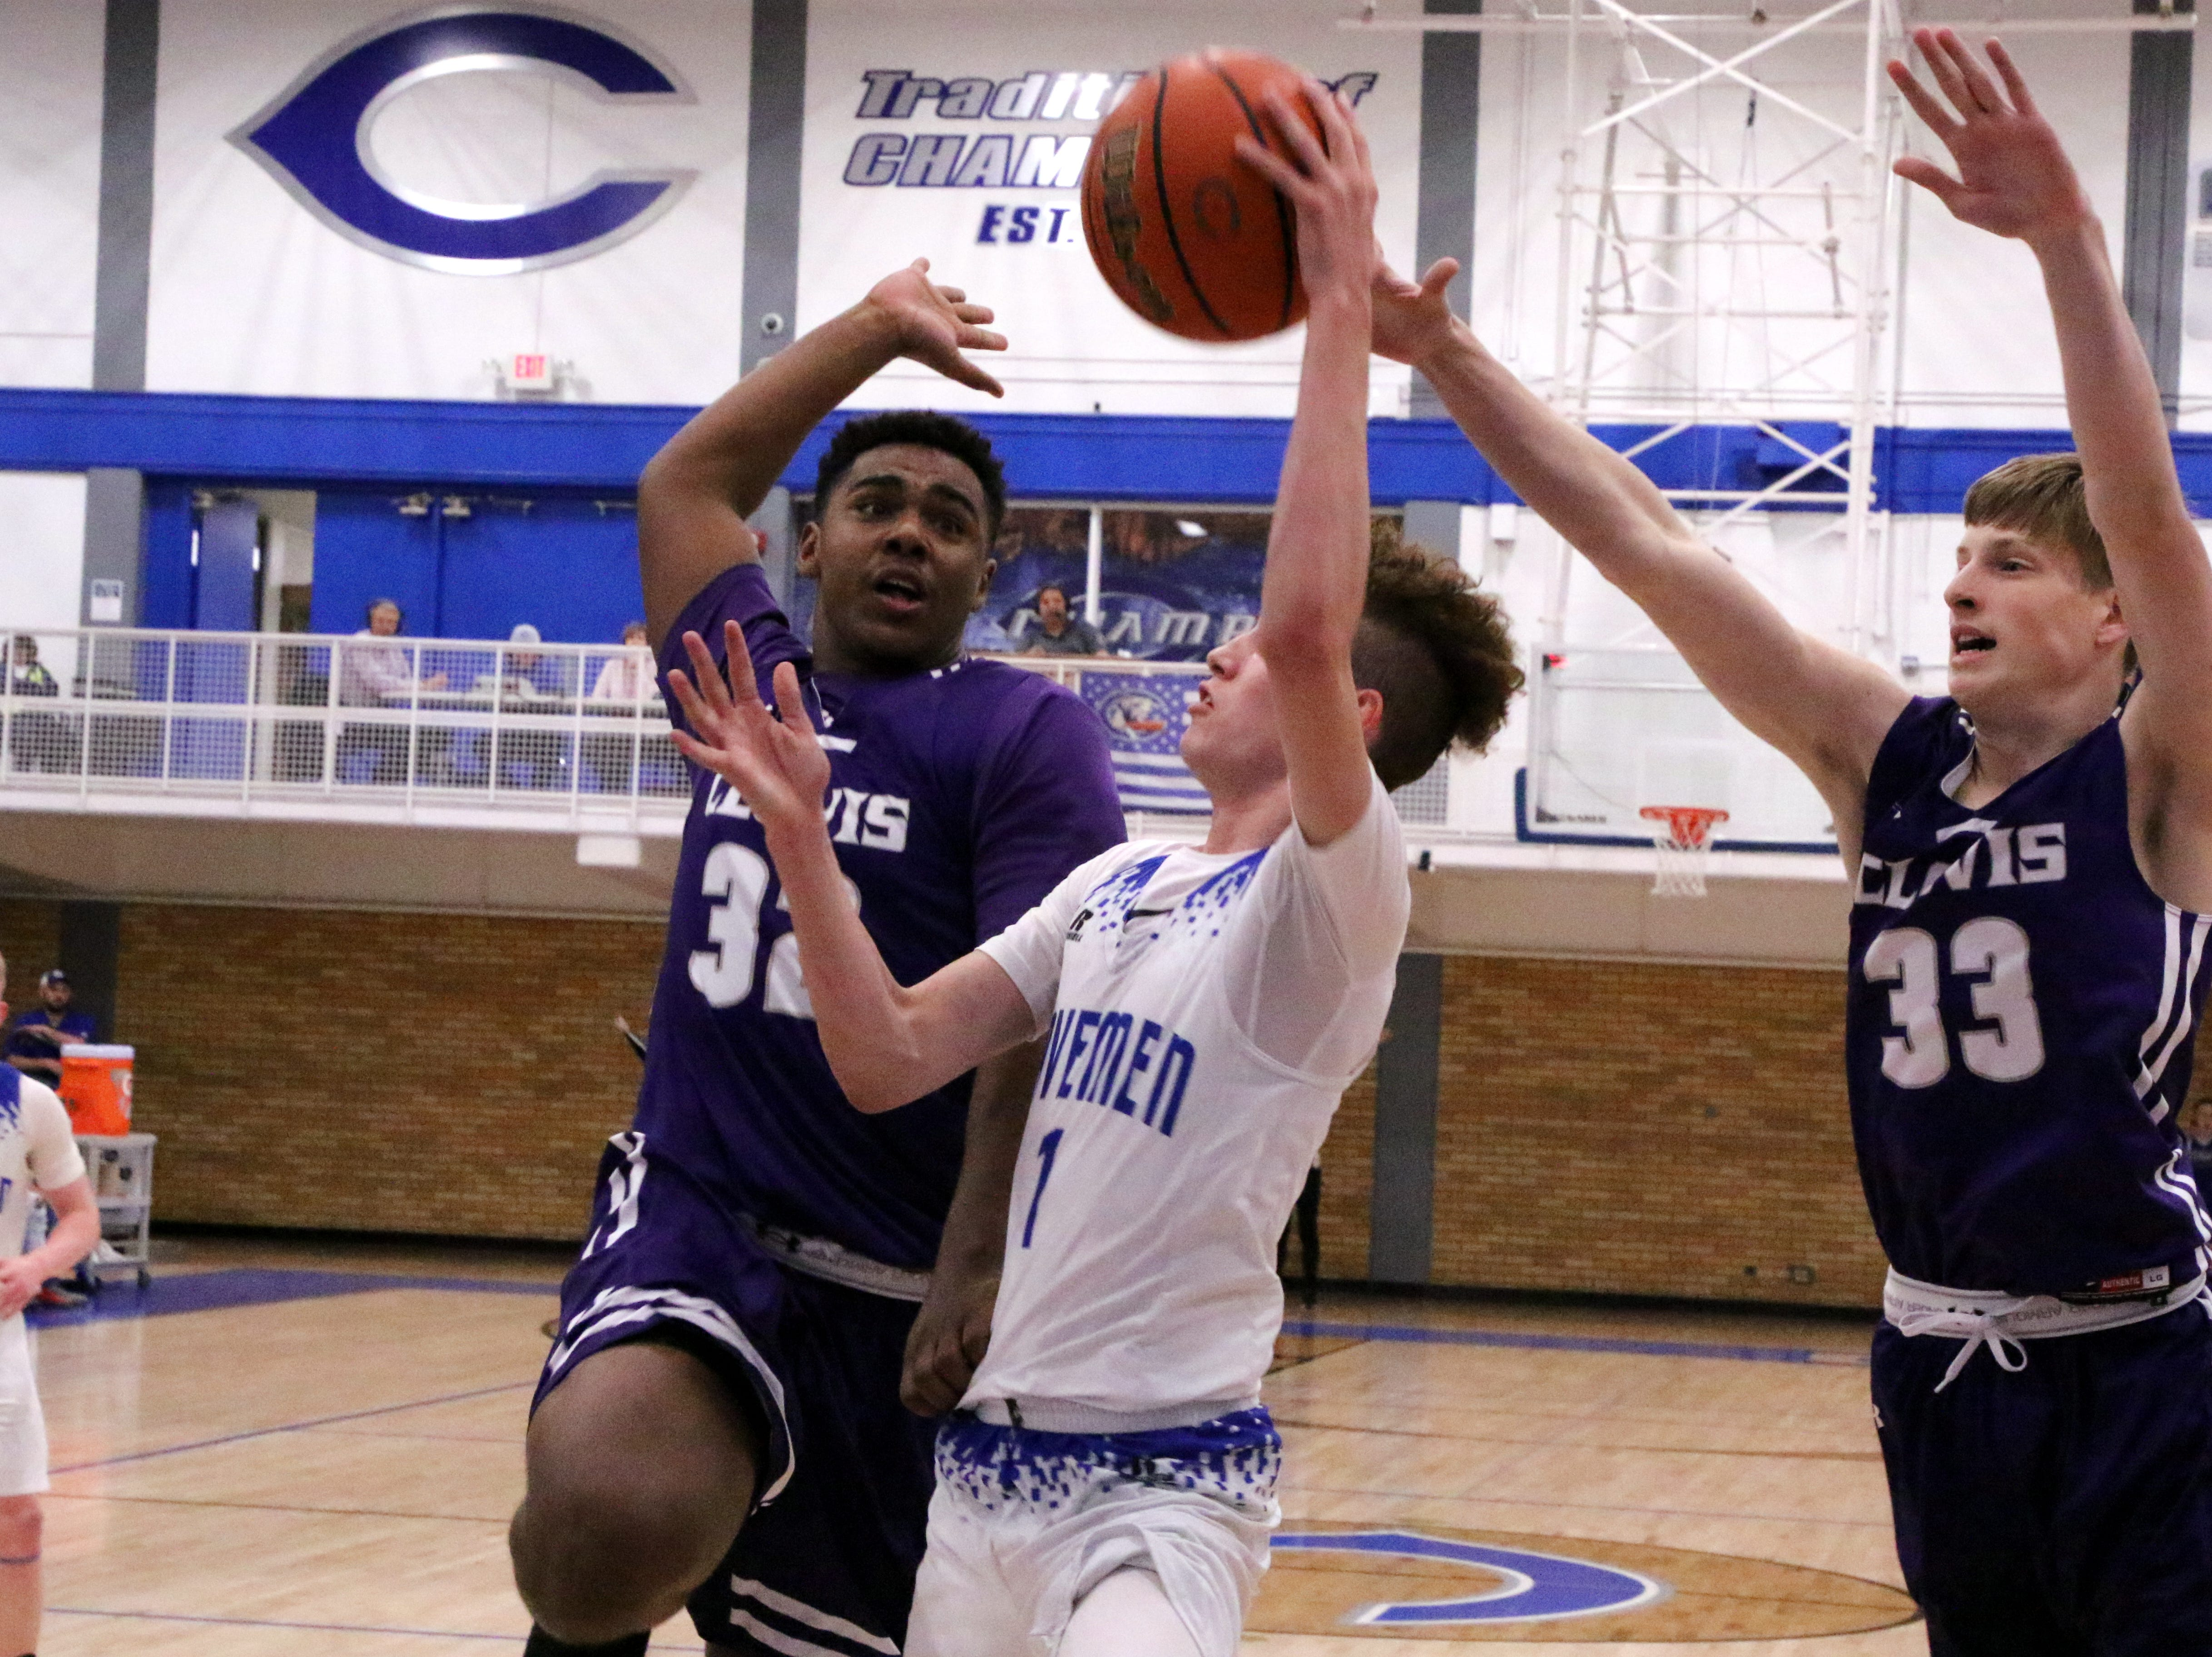 Clovis' Jaden Phillips (32) and Ethan Gershon (33) go for a block on Carlsbad's Josh Sillas during Tuesday's game.